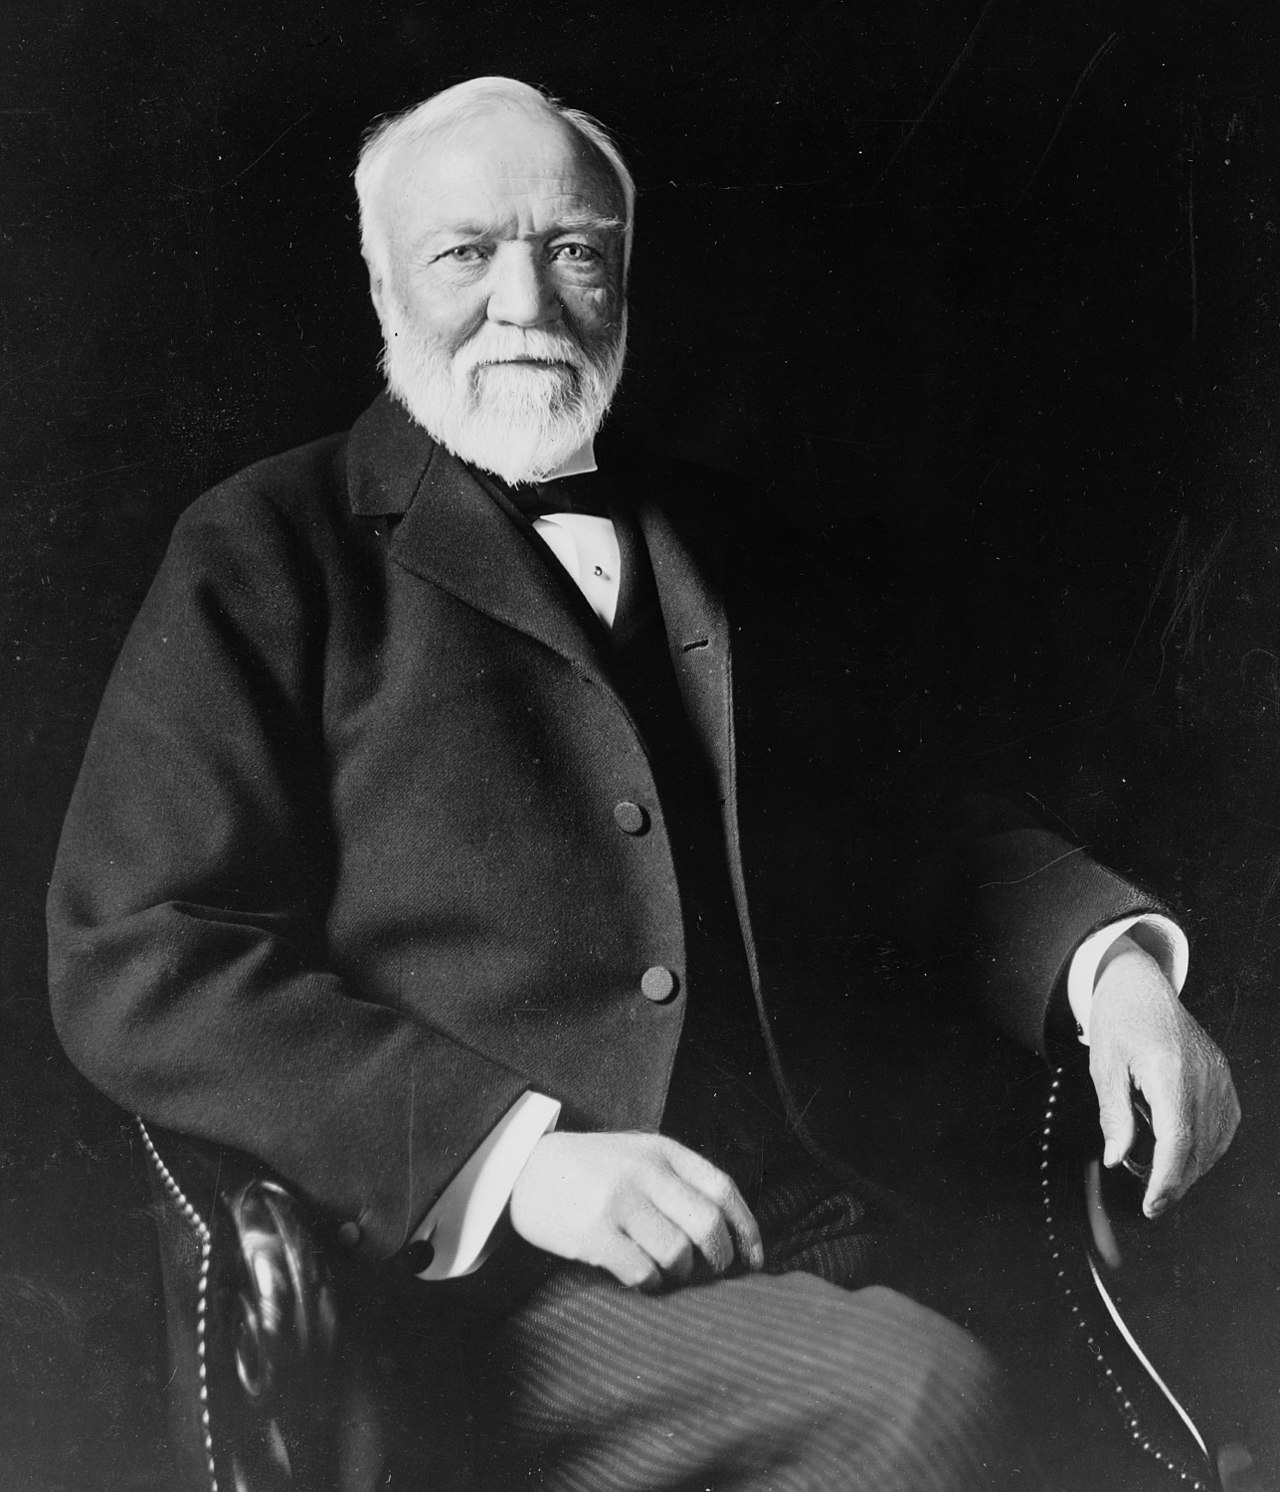 1280px-Andrew_Carnegie,_three-quarter_length_portrait,_seated,_facing_slightly_left,_1913.jpg